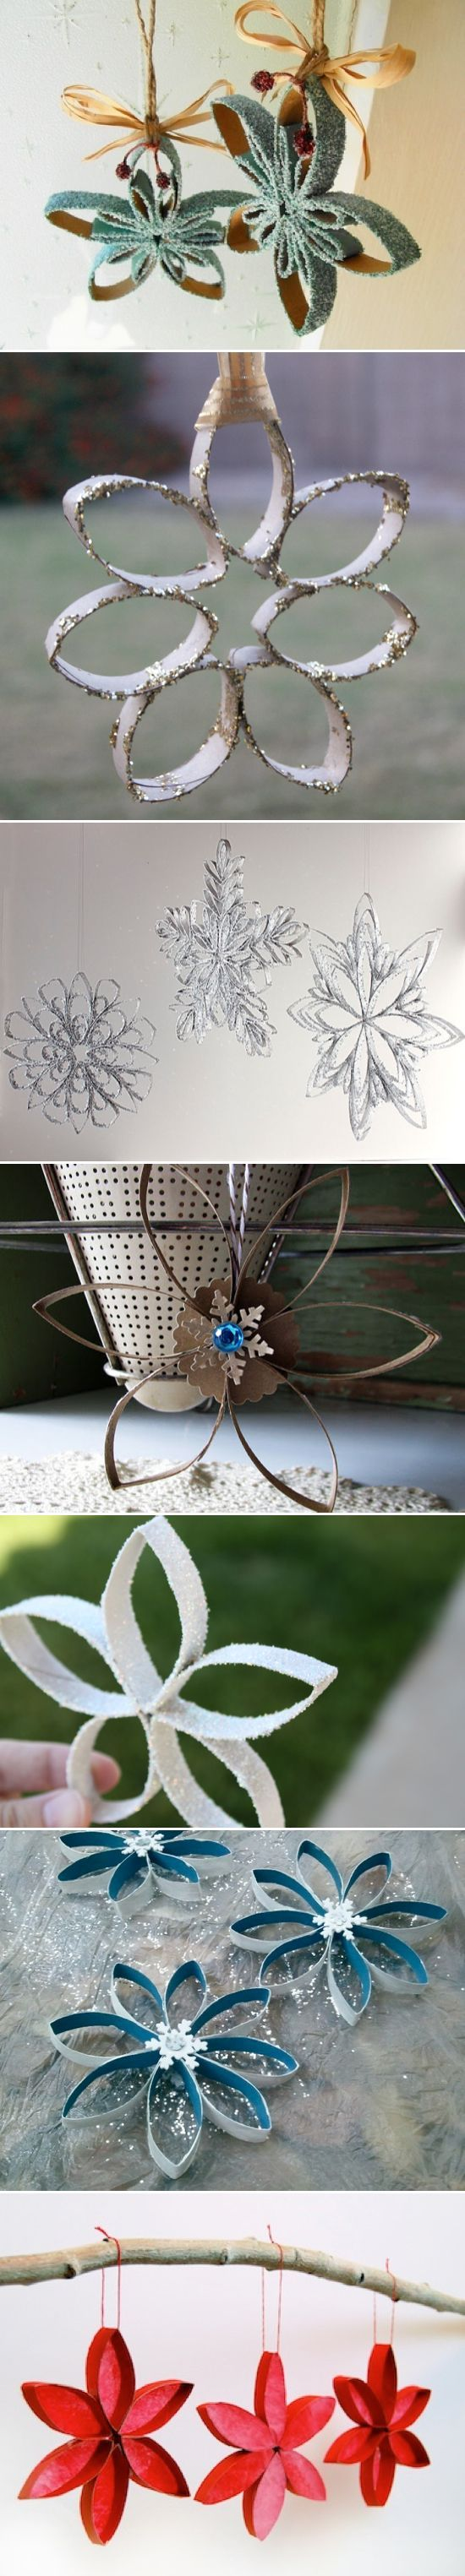 30 Christmas Tree Ornaments to Make